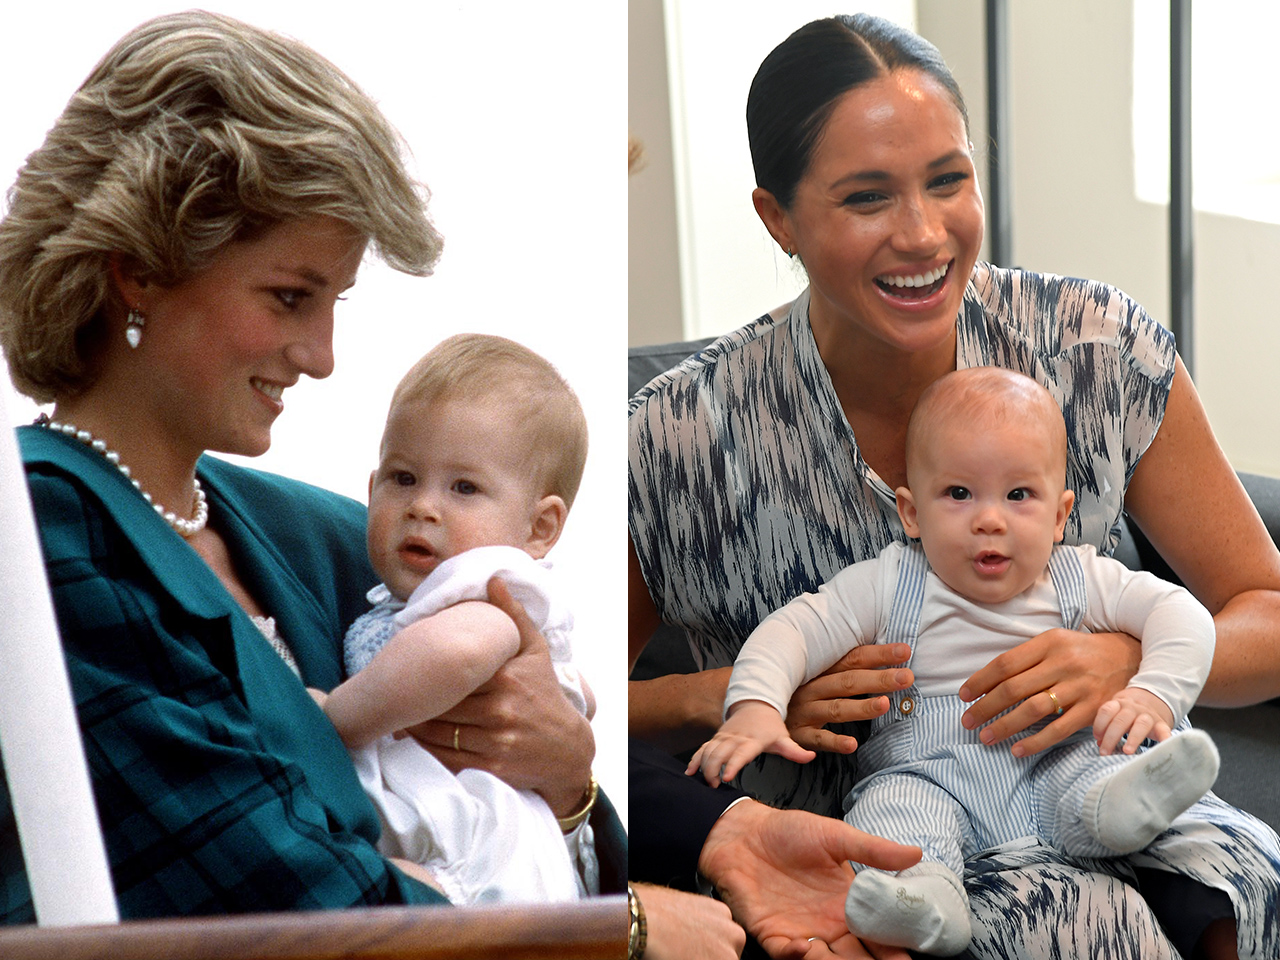 baby prince harry in princess diana's arms beside baby archie in meghan markle's arms